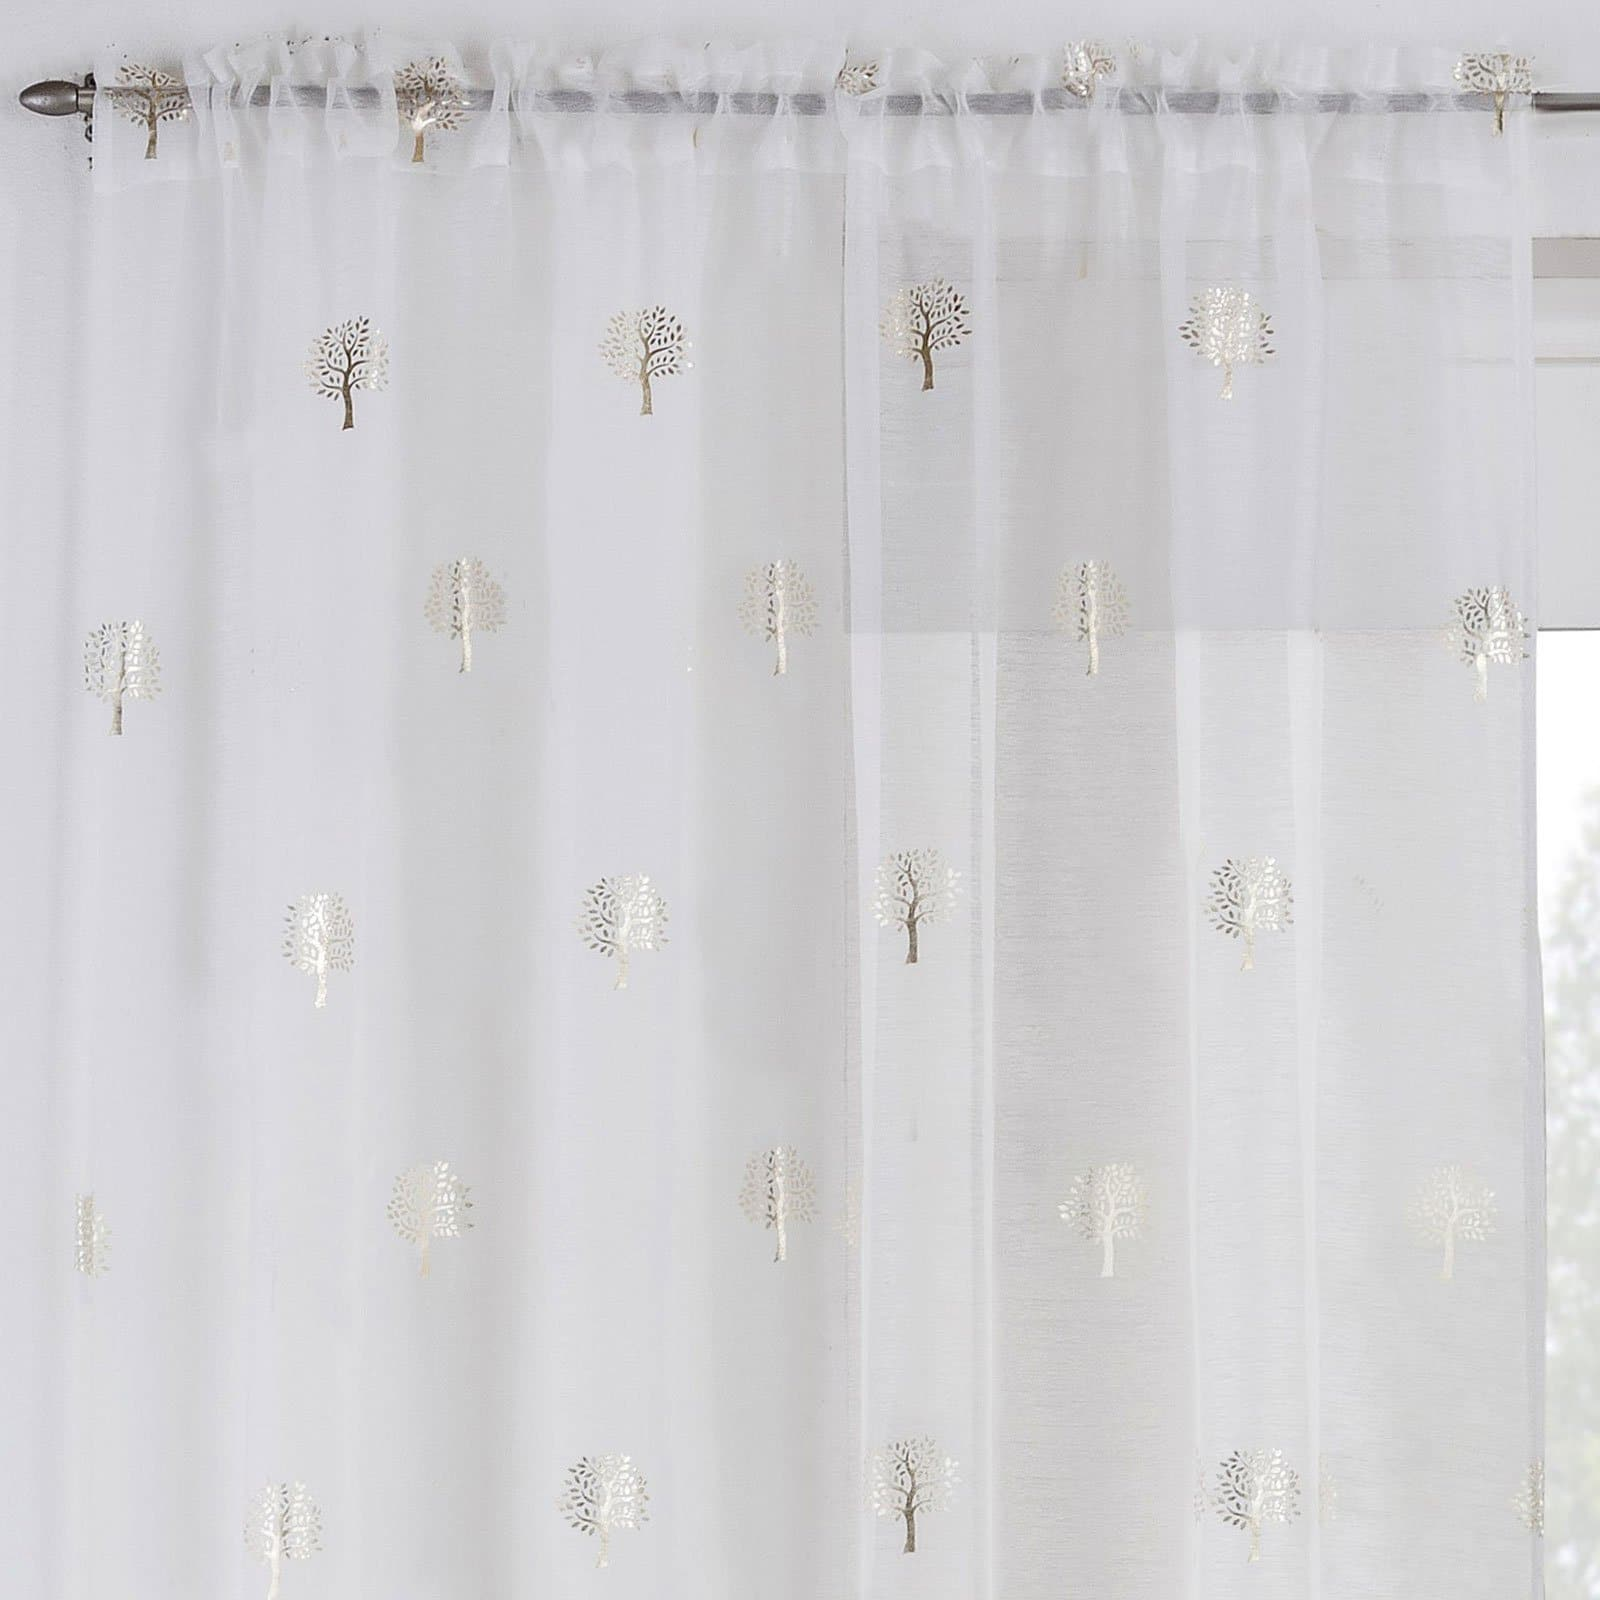 Birch Voile Curtain Panels Cream - 55'' x 48'' - Ideal Textiles